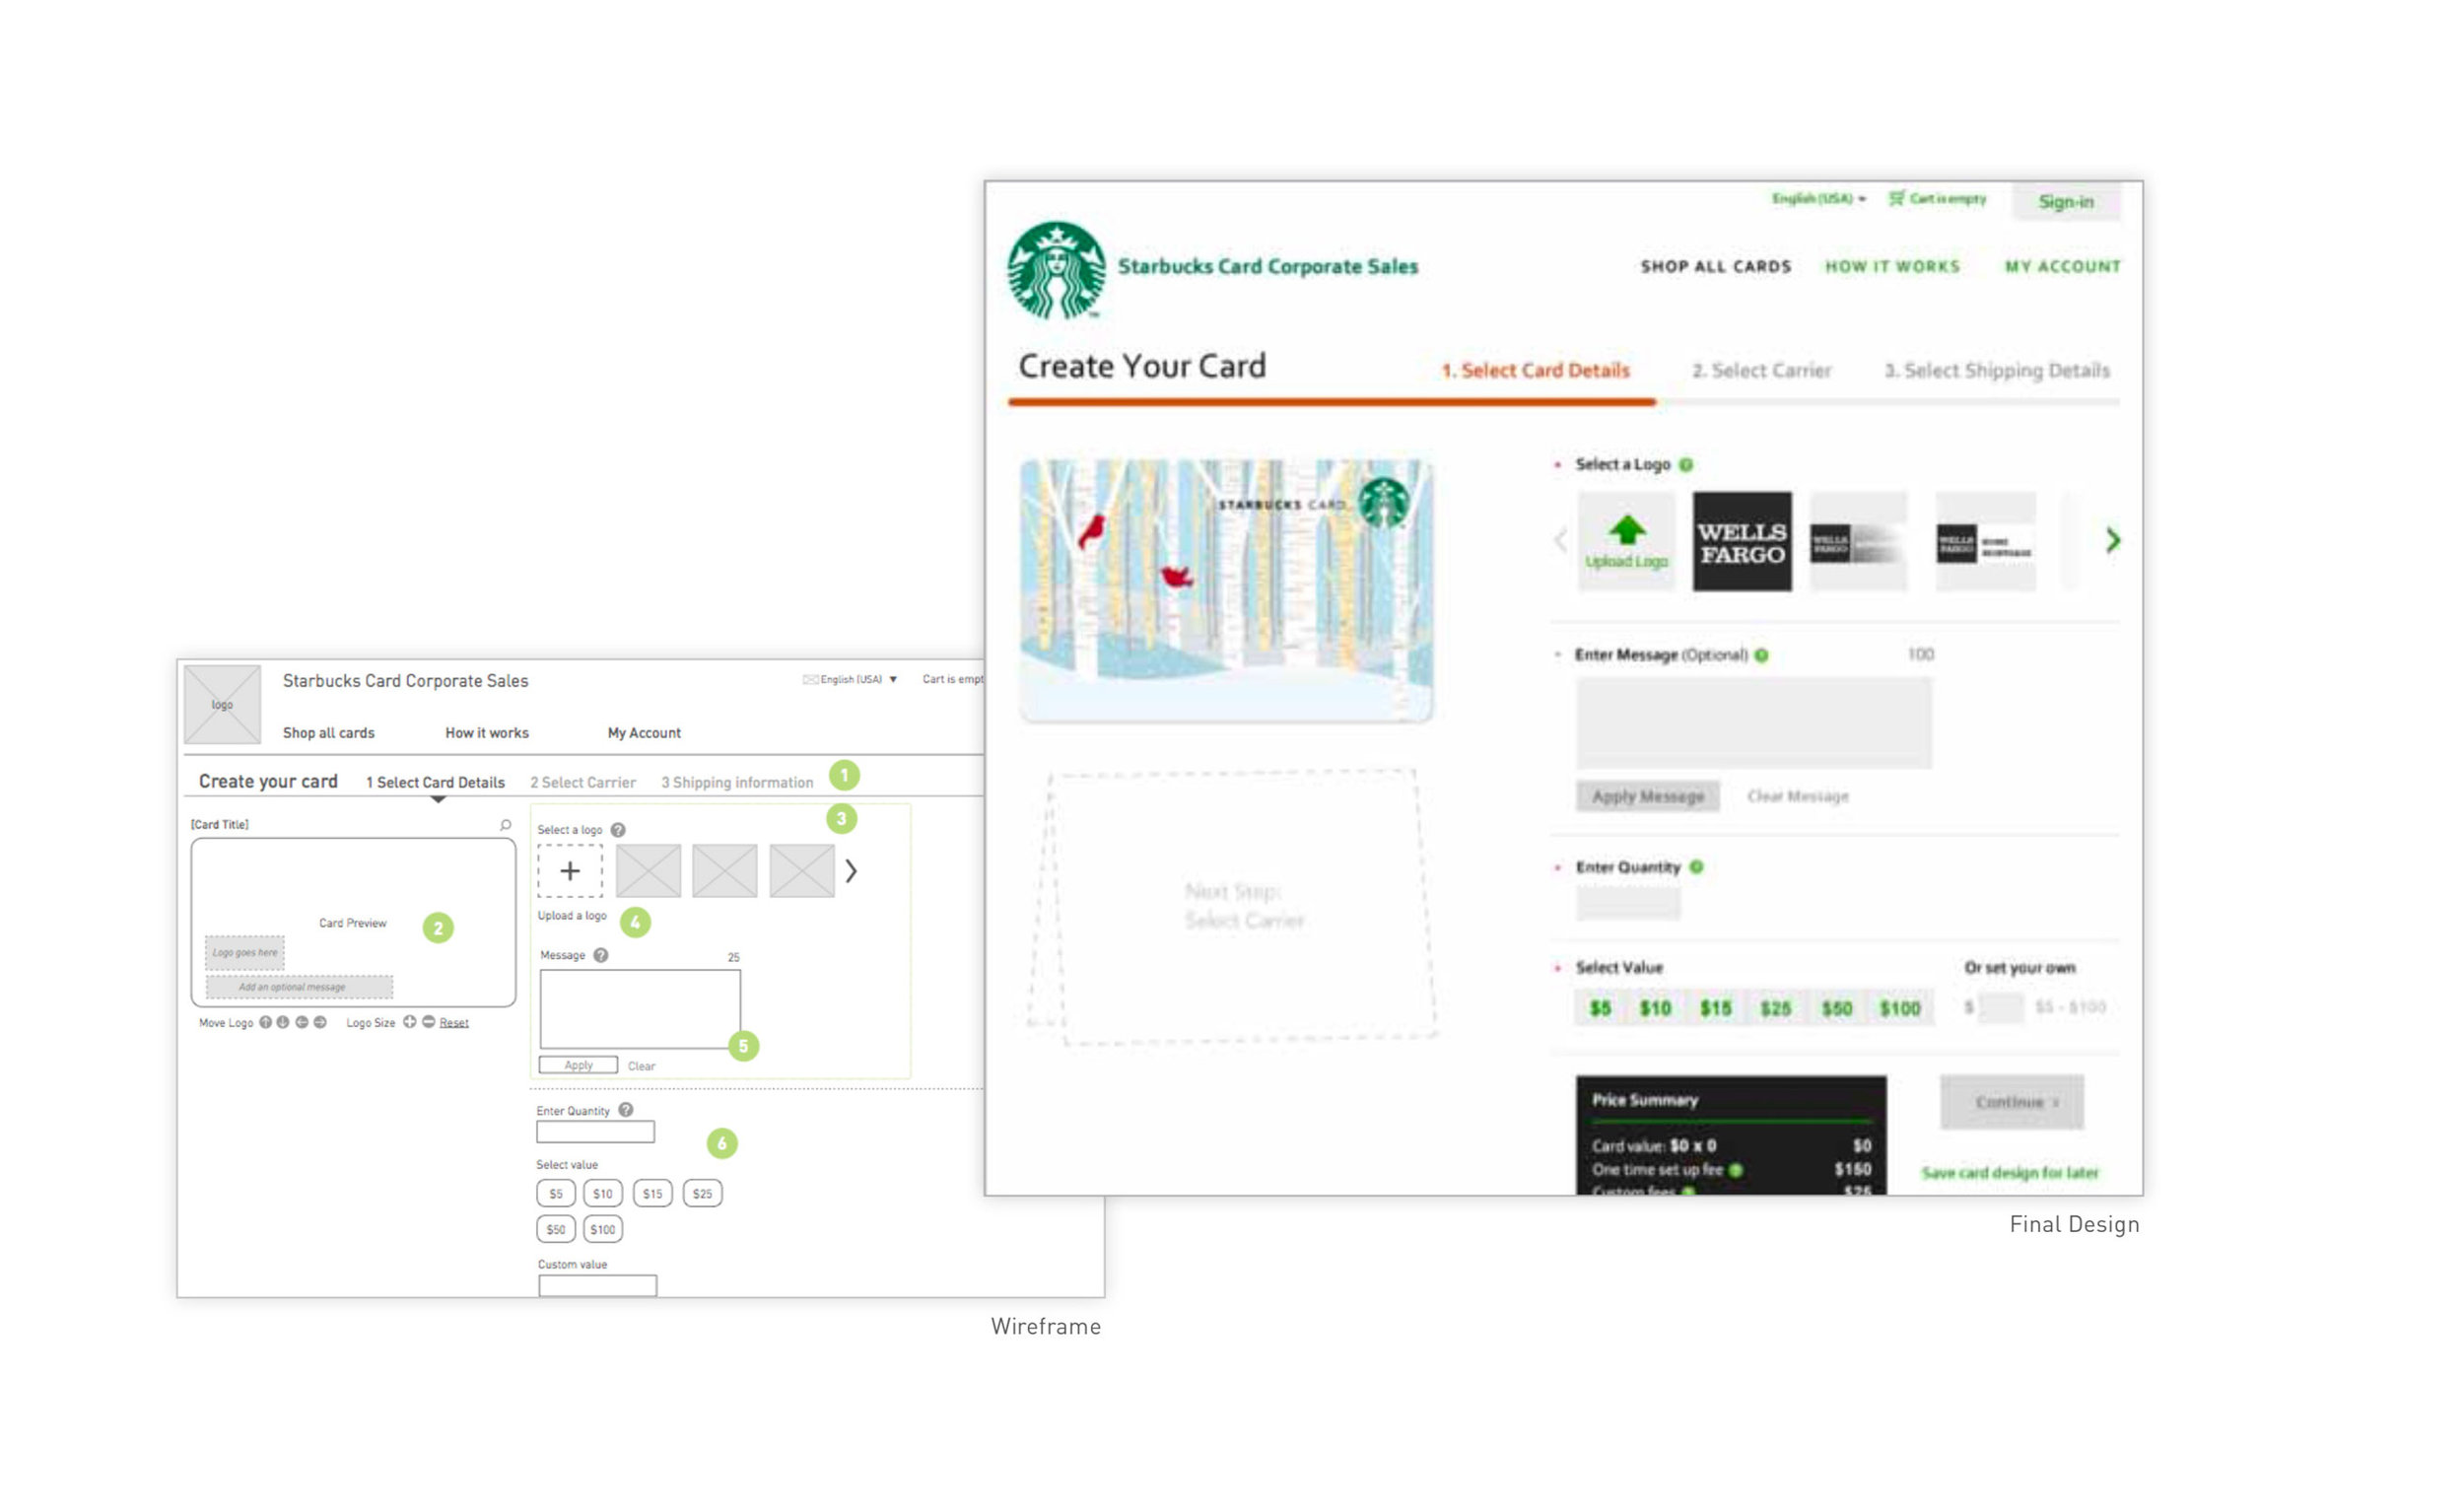 ABOUT THE PROJECT - Starbucks Corporate Cards enables businesses to send Starbucks gift cards with co-branding options, personalizations, and to order cards in bulk. Tasked with converting the existing manual process to a self server online experience.